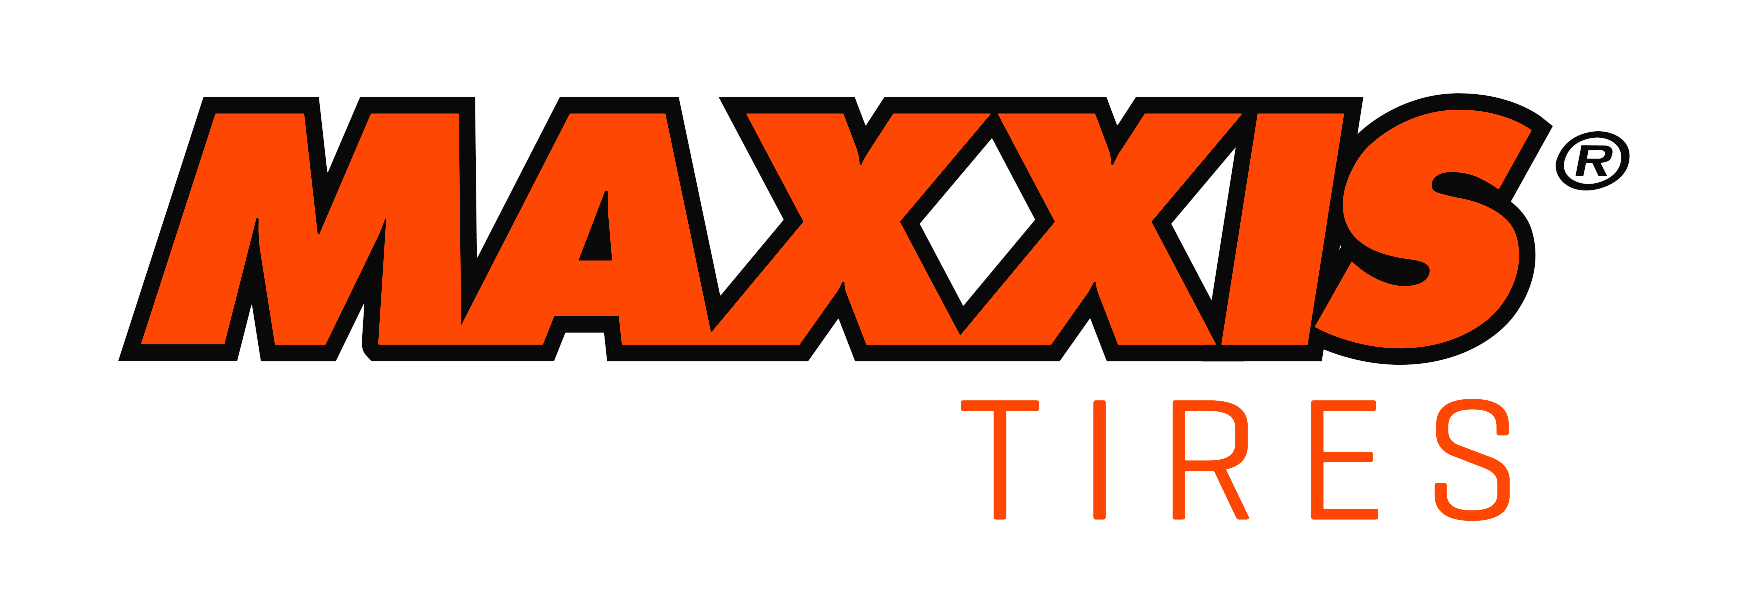 maxxis-tires-logo.png